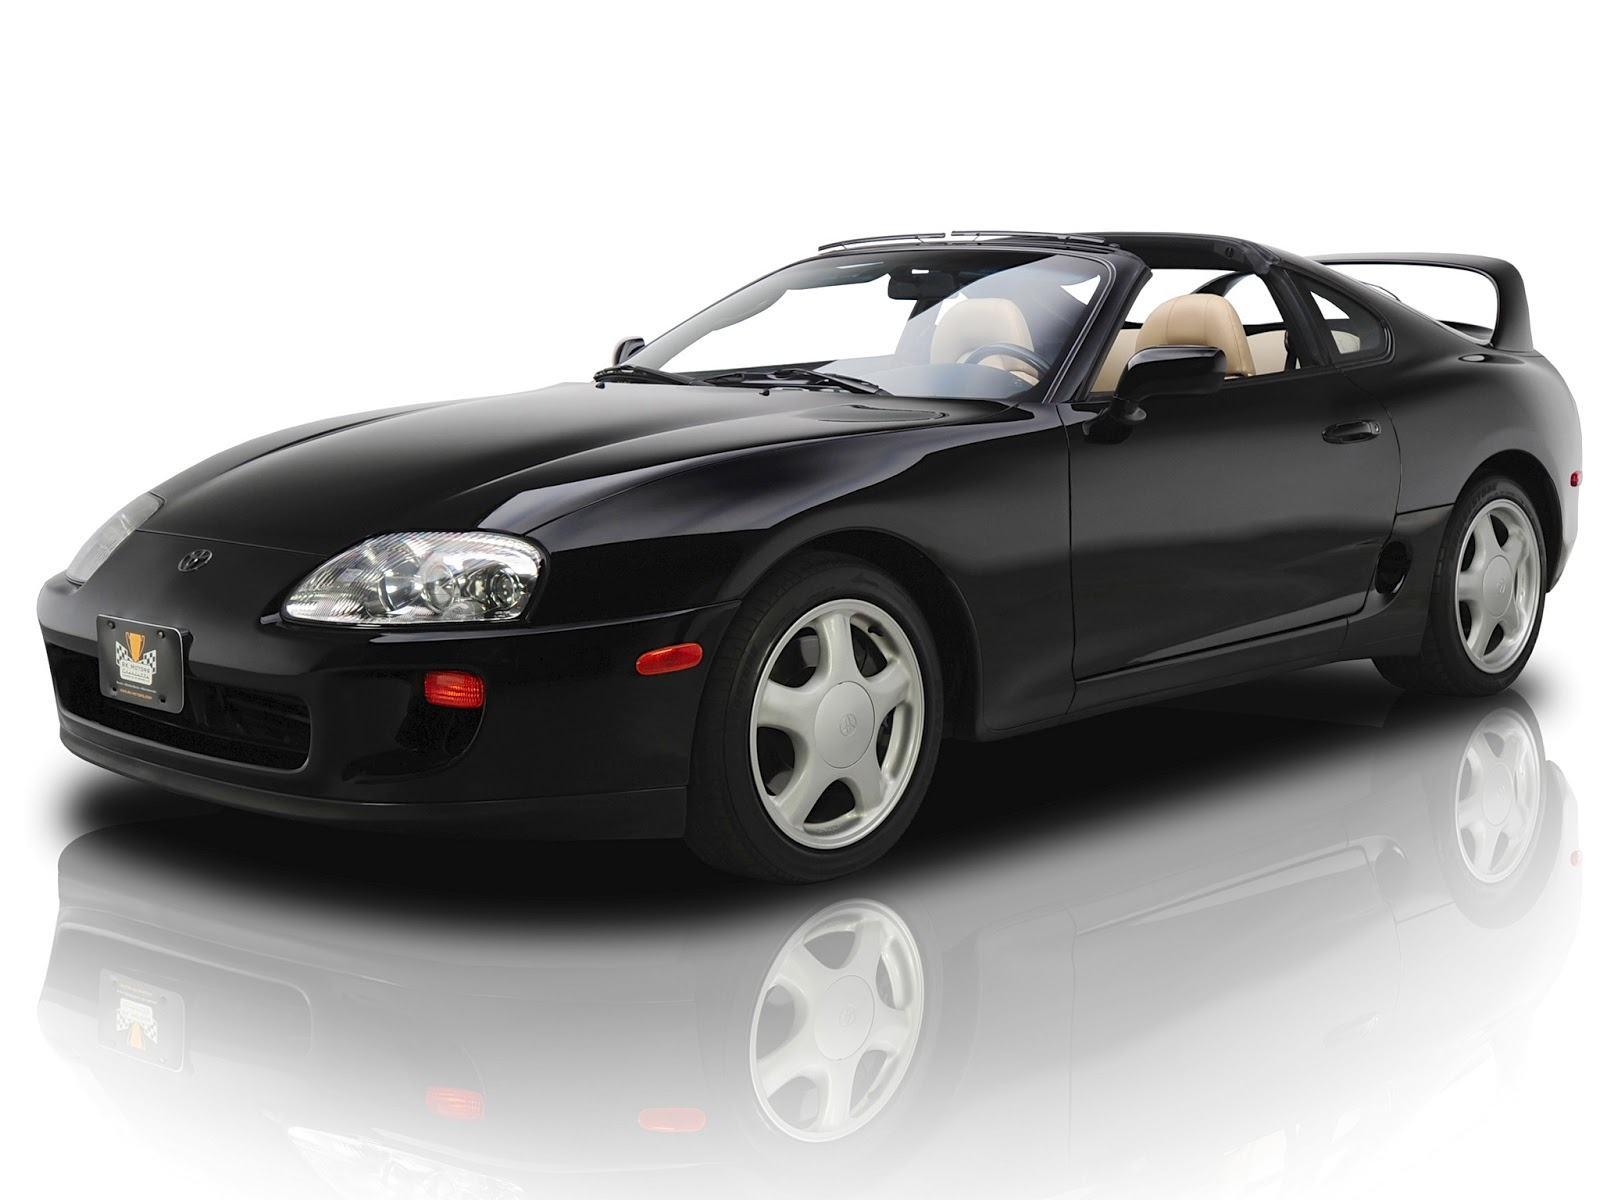 The 2001 toyota supra from the movie the fast and the furious jza80